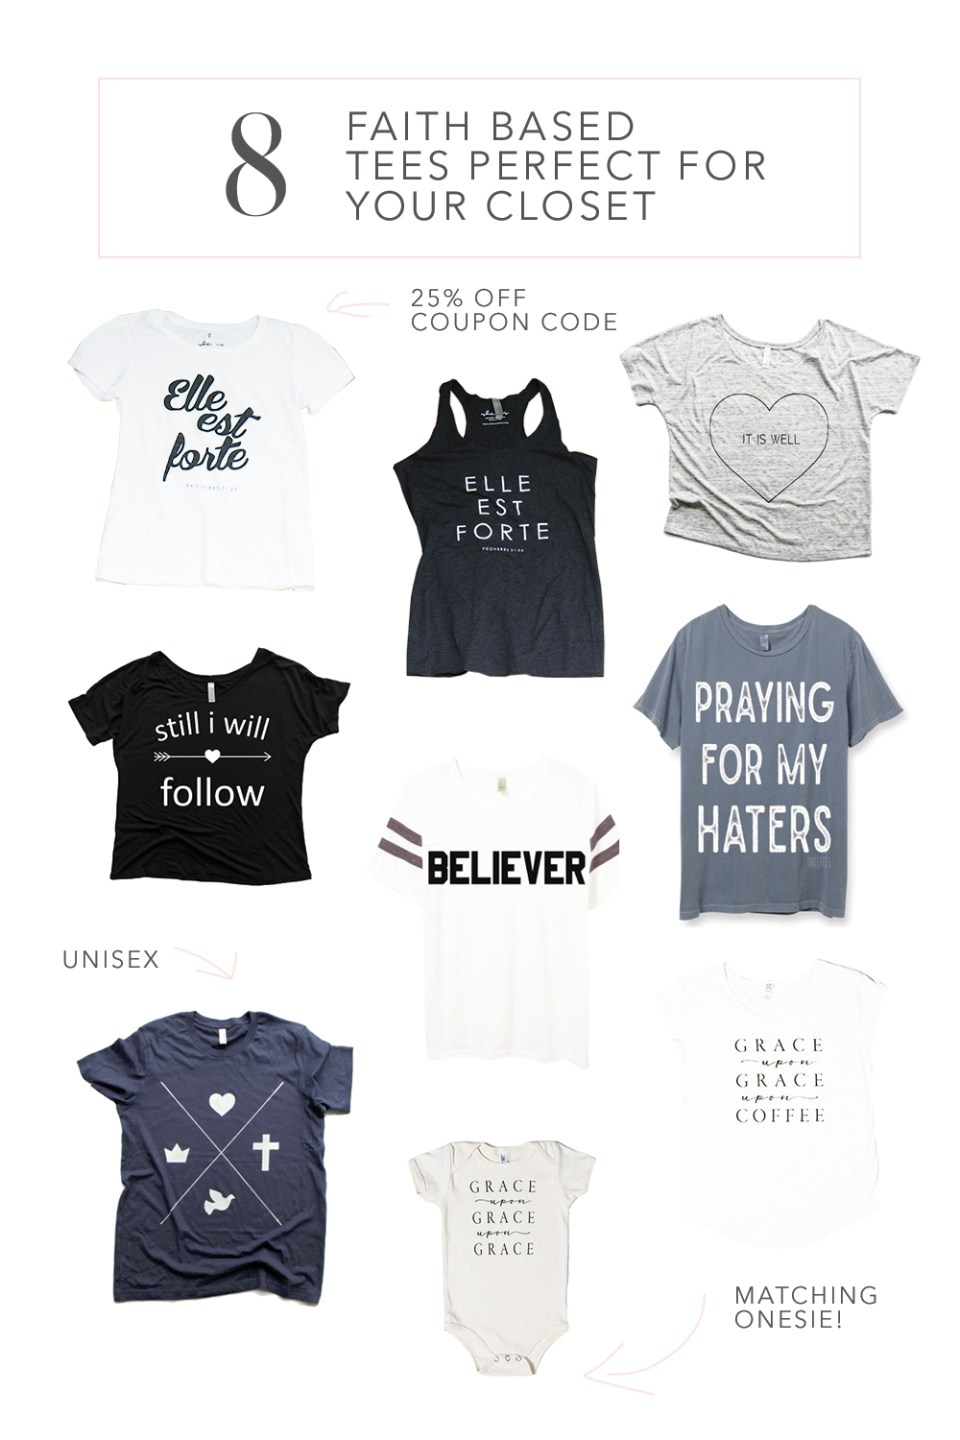 8 Adorable Faith Based Tees from Small Online Shops | 25% off Coupon Code to SHE IS Available on Blog